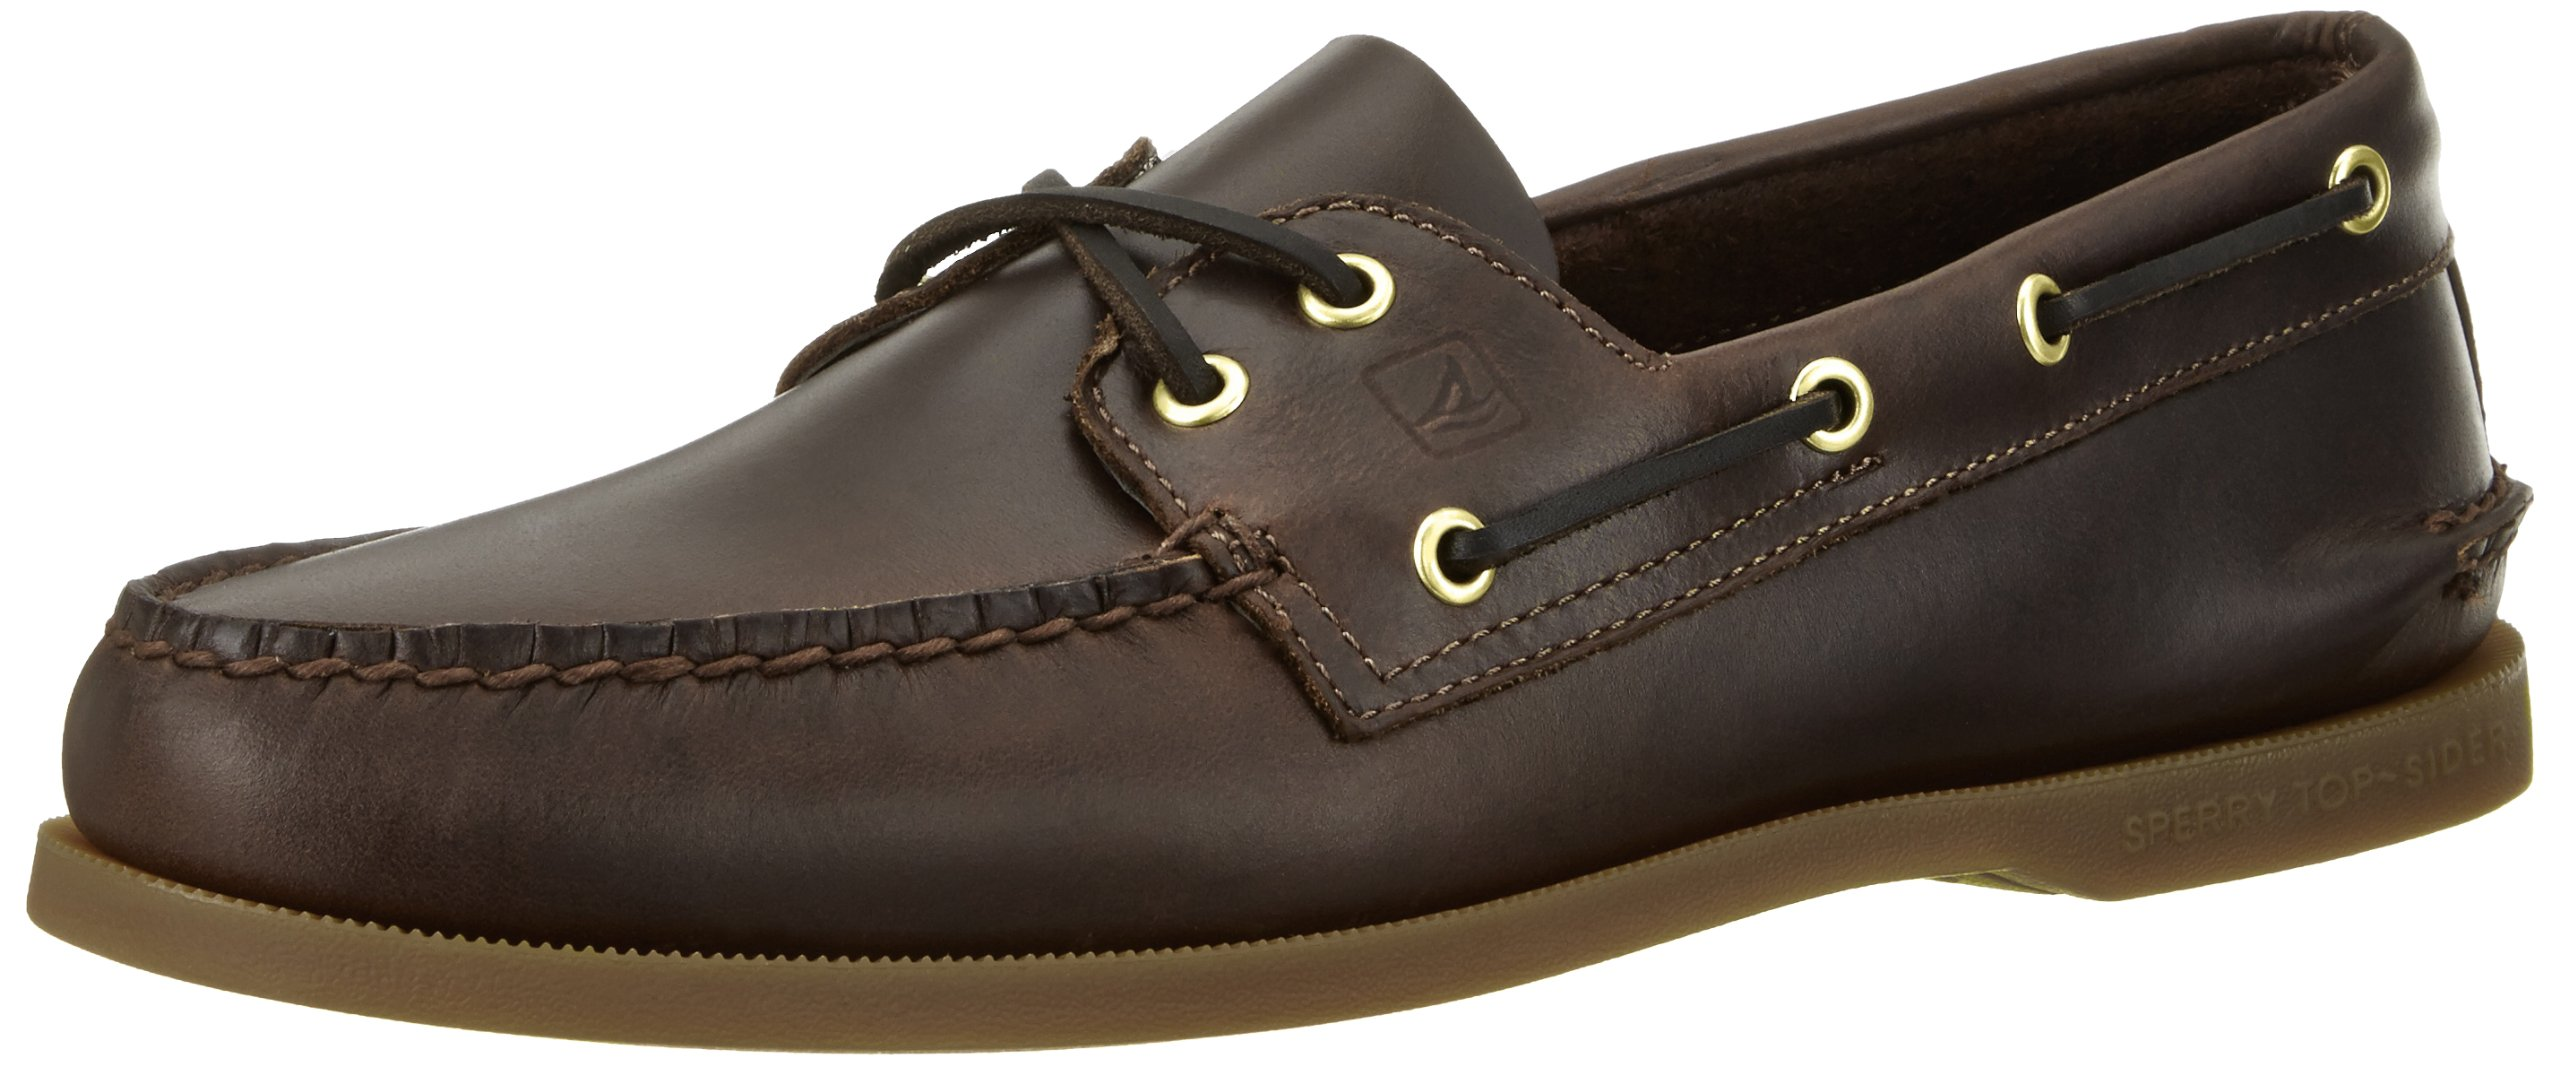 Sperry Top-Sider Men's Authentic 2-Eye Boat Shoe, Amaretto, 16 M US